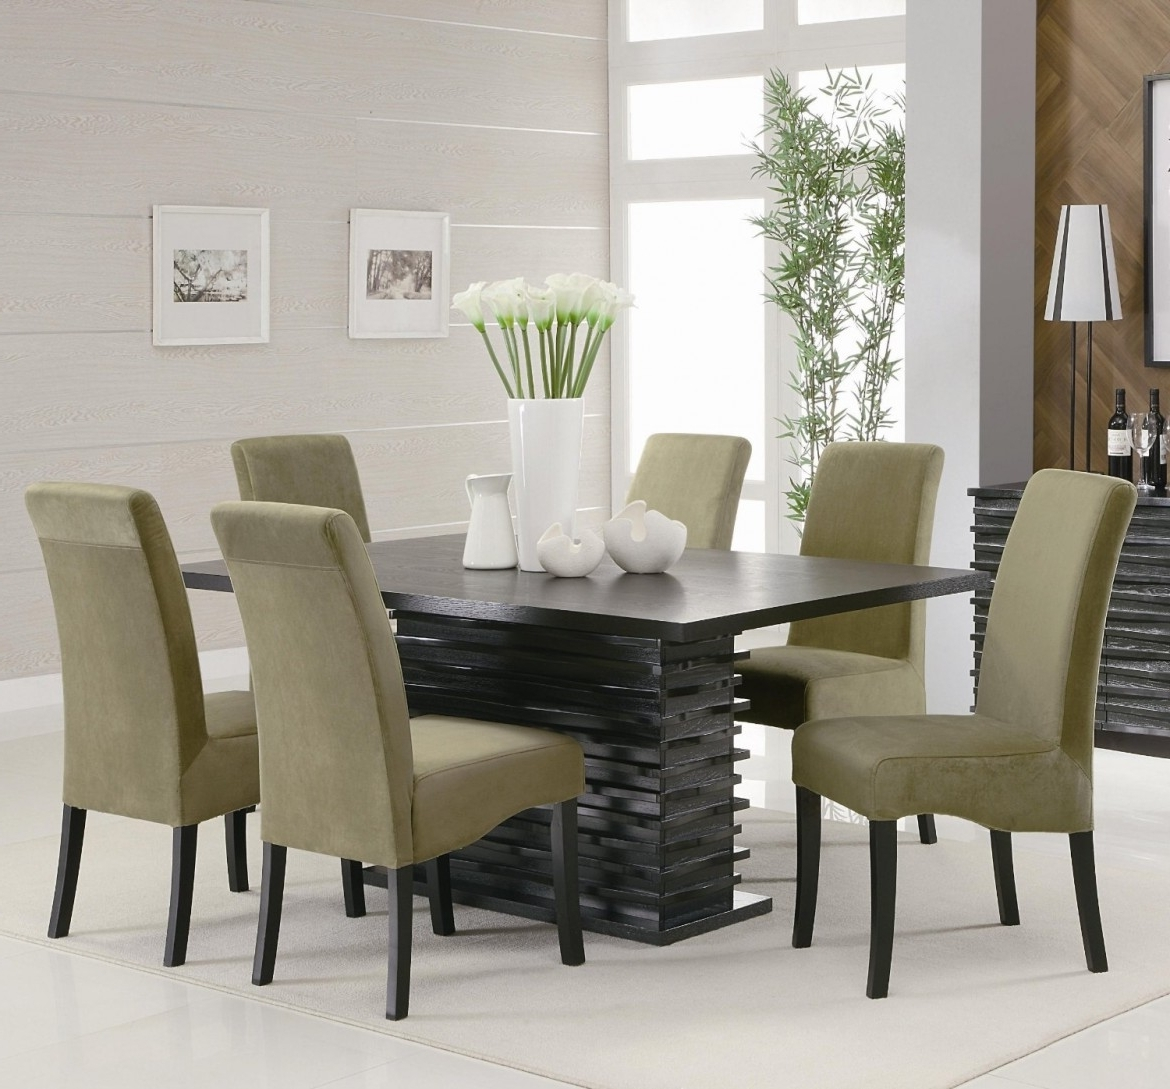 Well Known Contemporary Dining Tables Sets Inside Modern Dining Room With White Flower Vase And Rectangle Black Table (View 25 of 25)